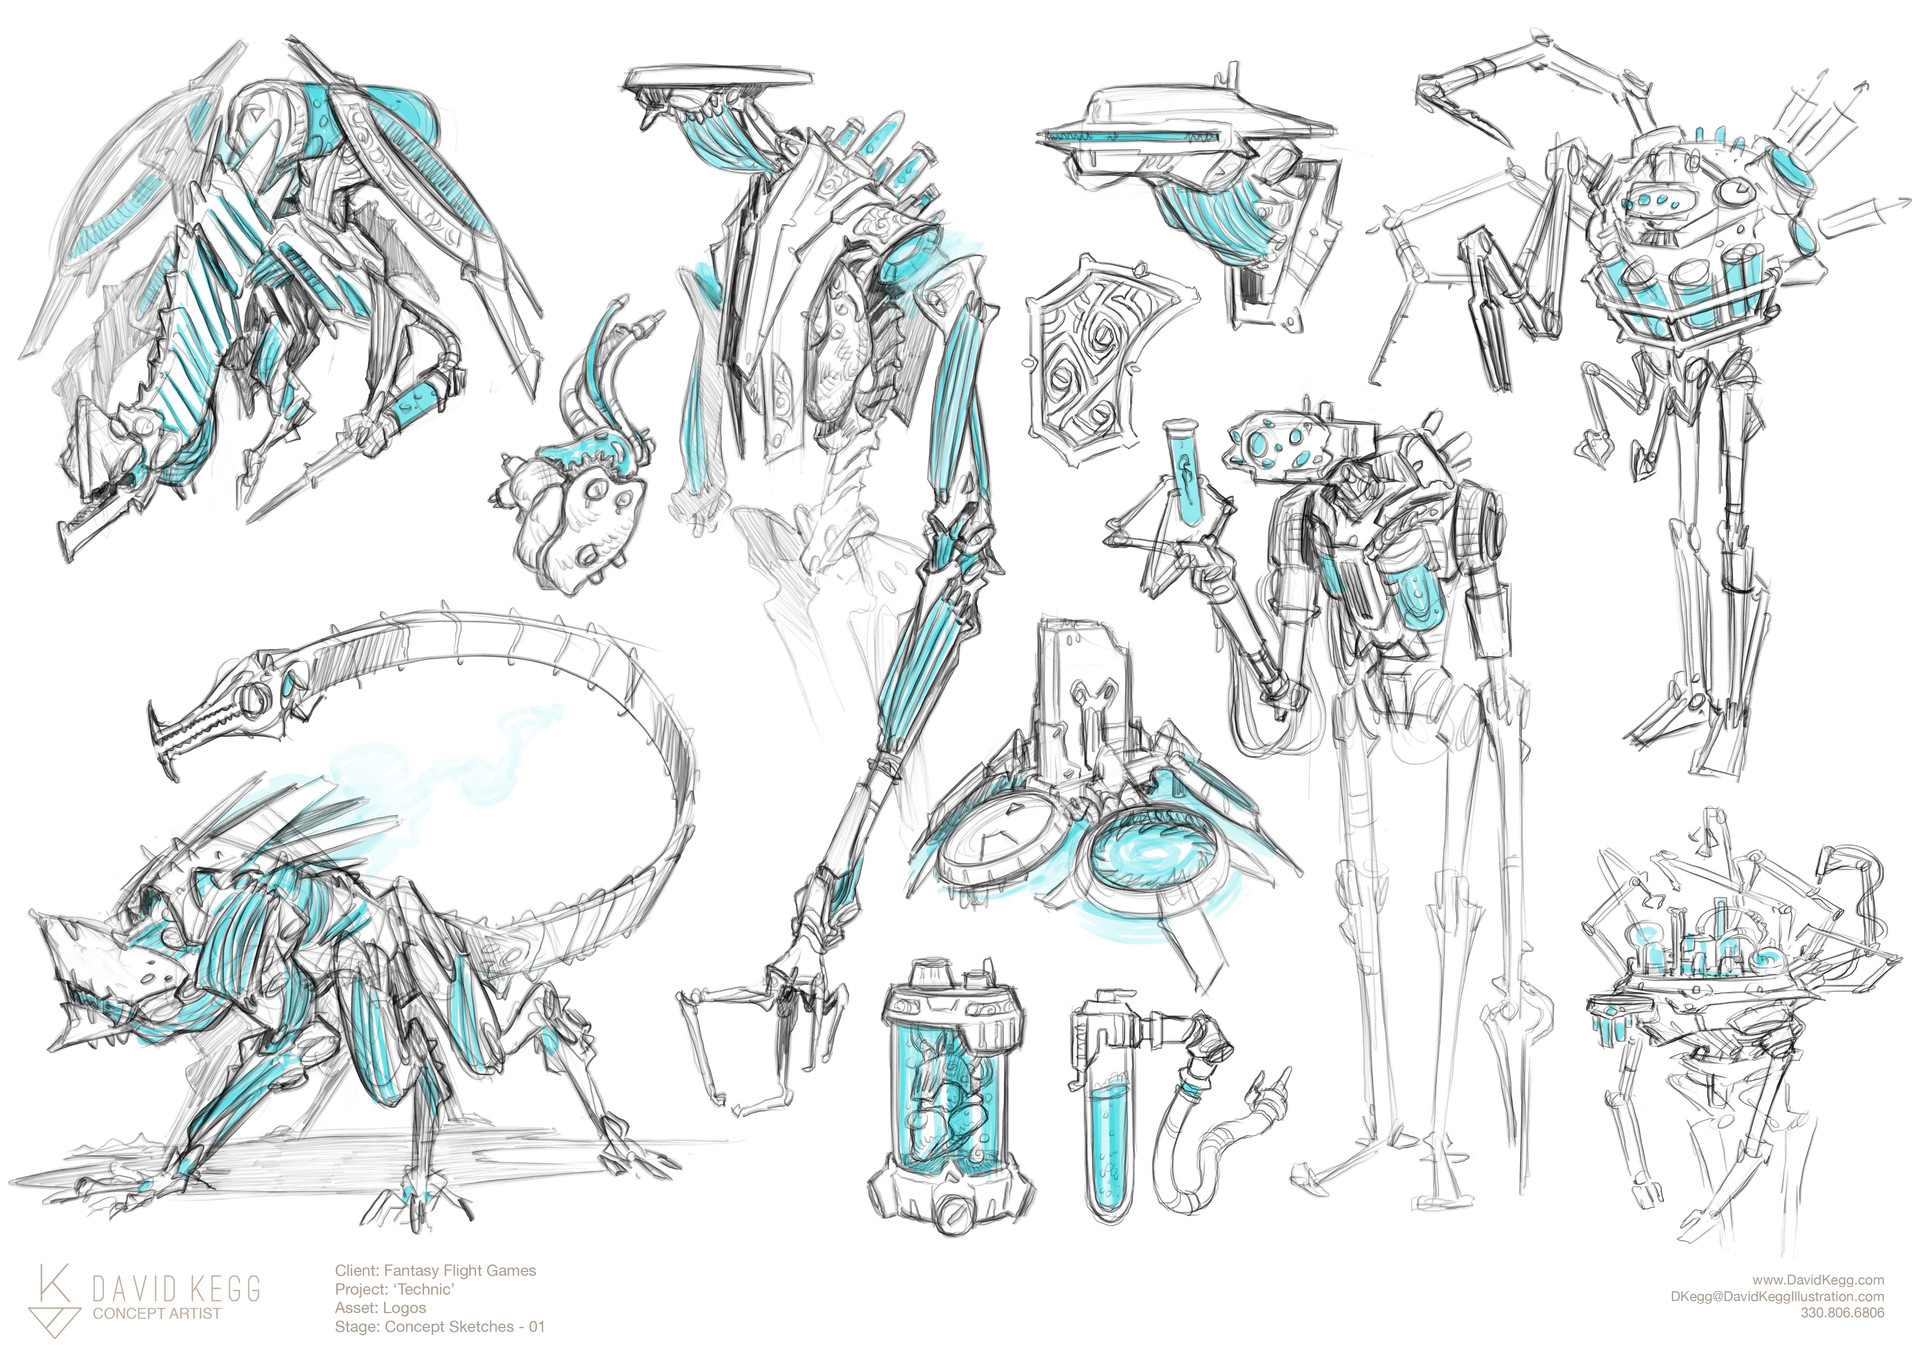 David kegg kegg ffgtechnic logos conceptsketches 01